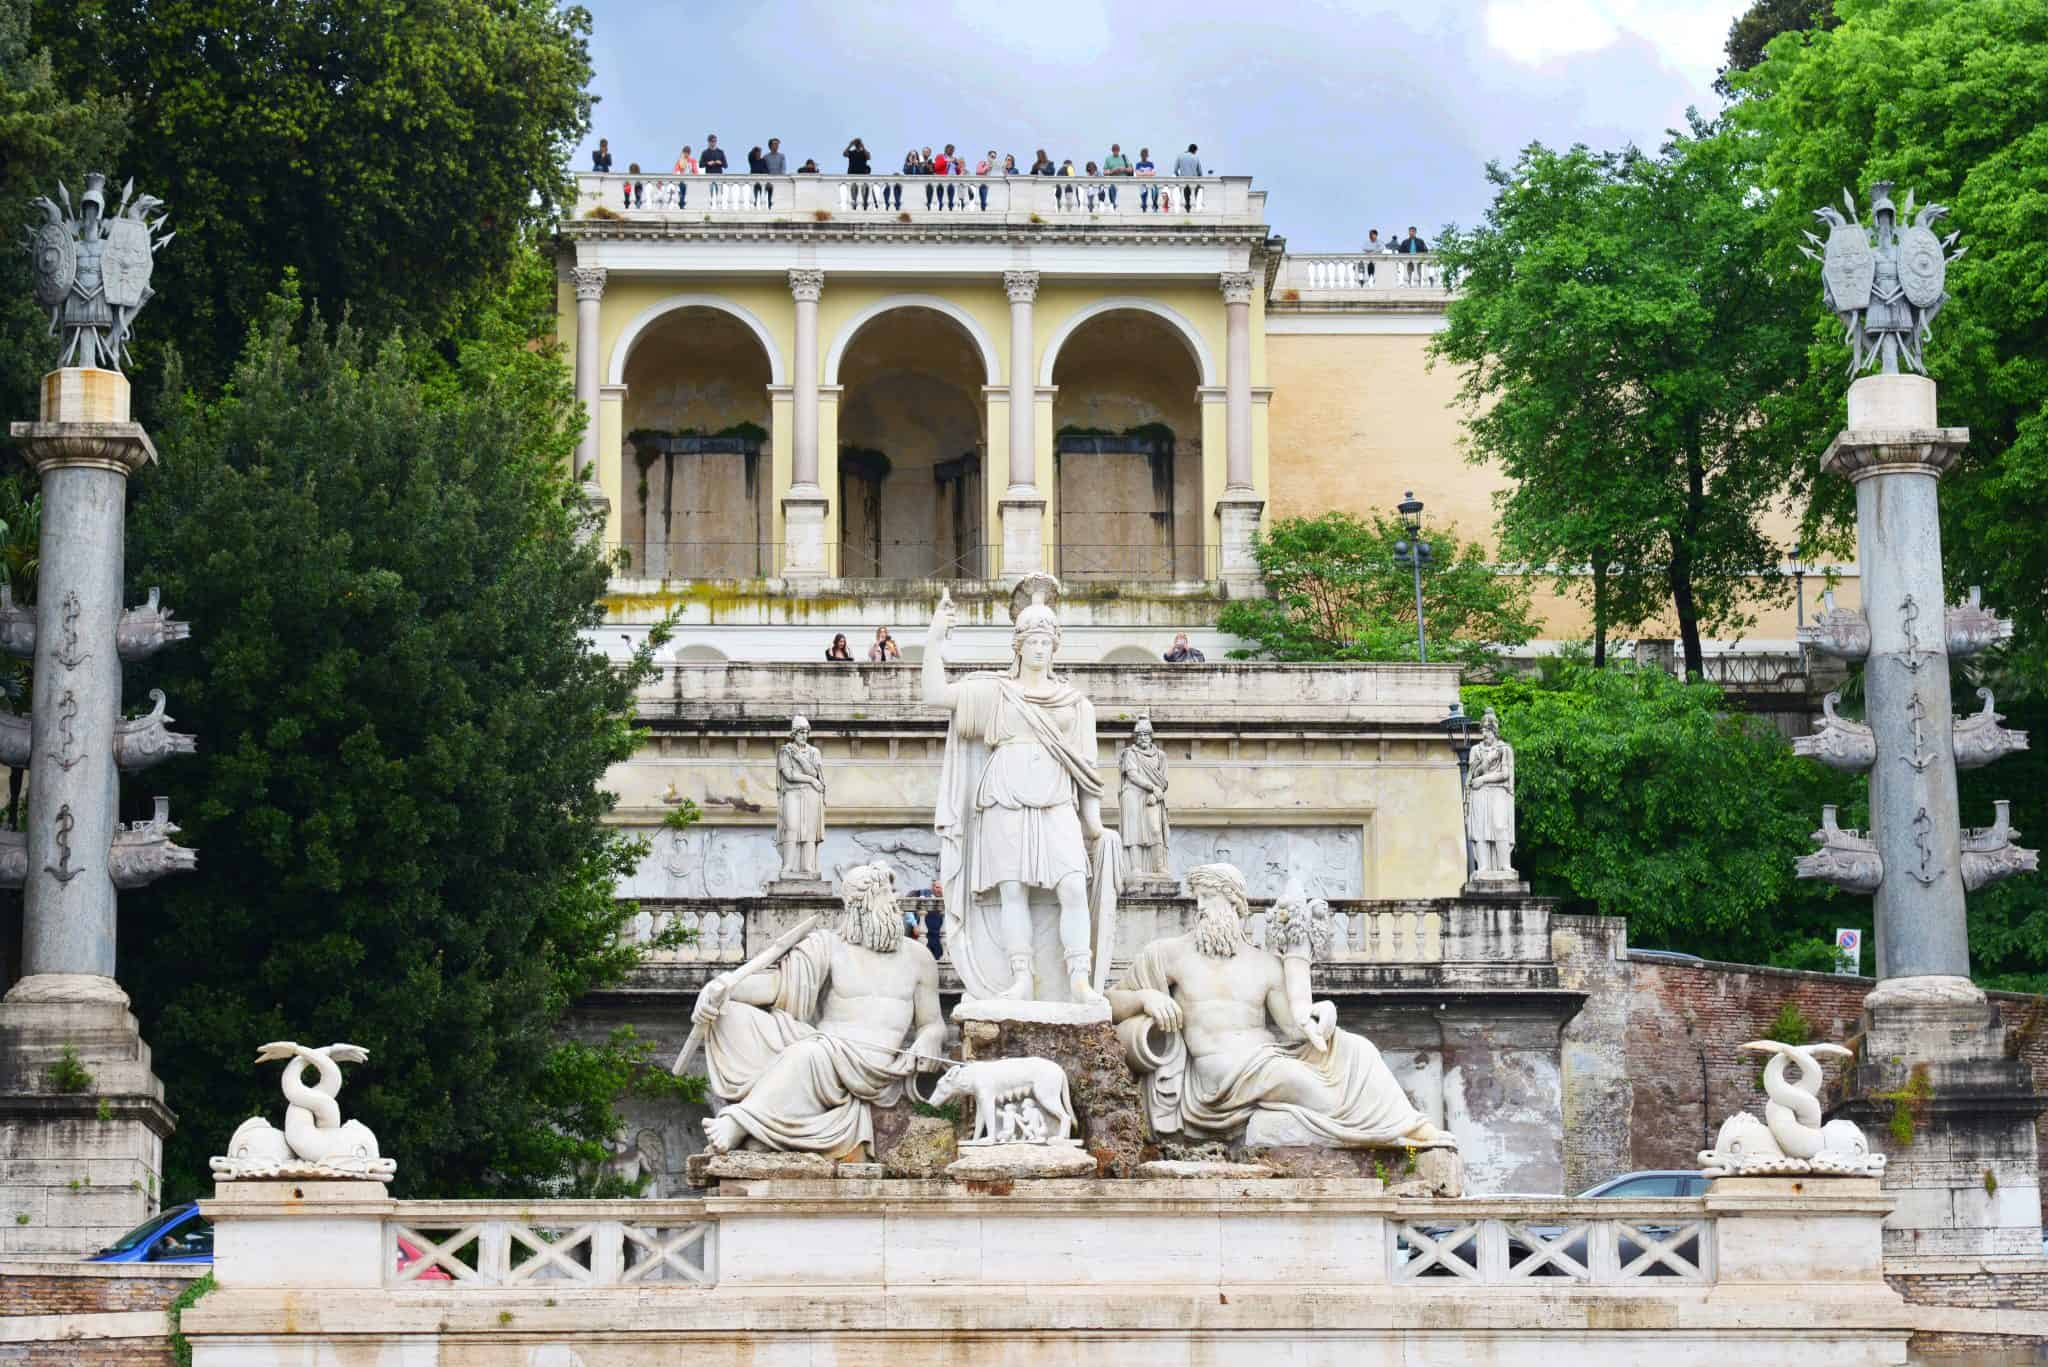 Piazza del Popolo: The Piazza del Popolo was the arrival point of arrival for travellers for many centuries, the first view of the Eternal City, so it makes sense that it was grand and elegant. You can admire the piazza from the ground or from the terrace of the Pincio.